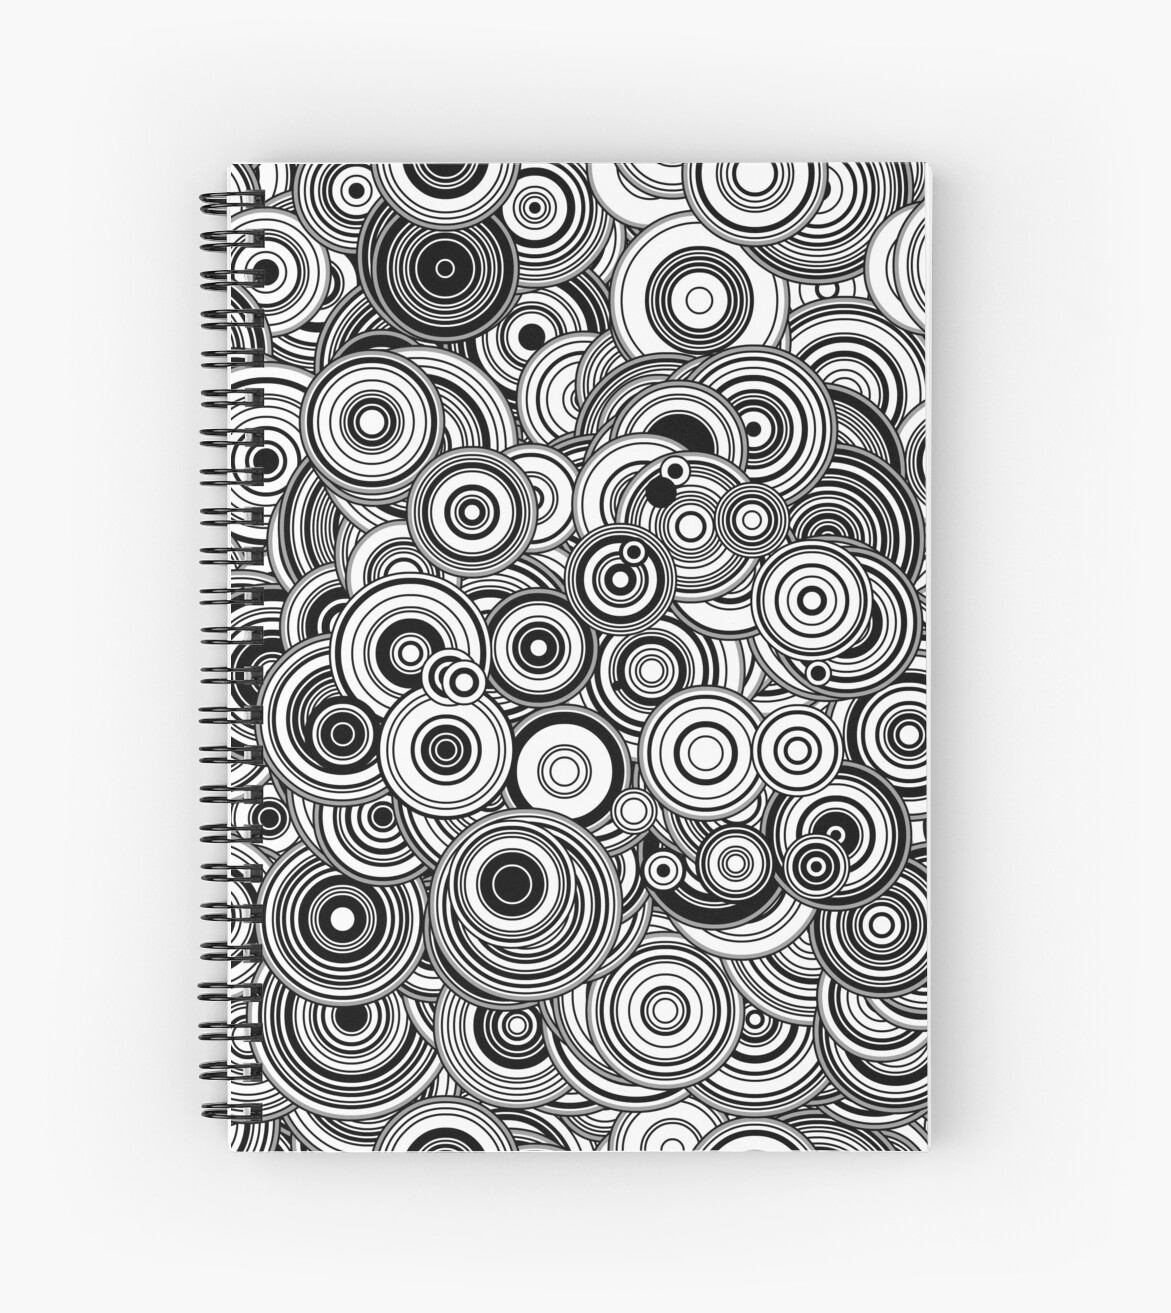 Genertive Art Particle Circles, Black and White by KristinHenry